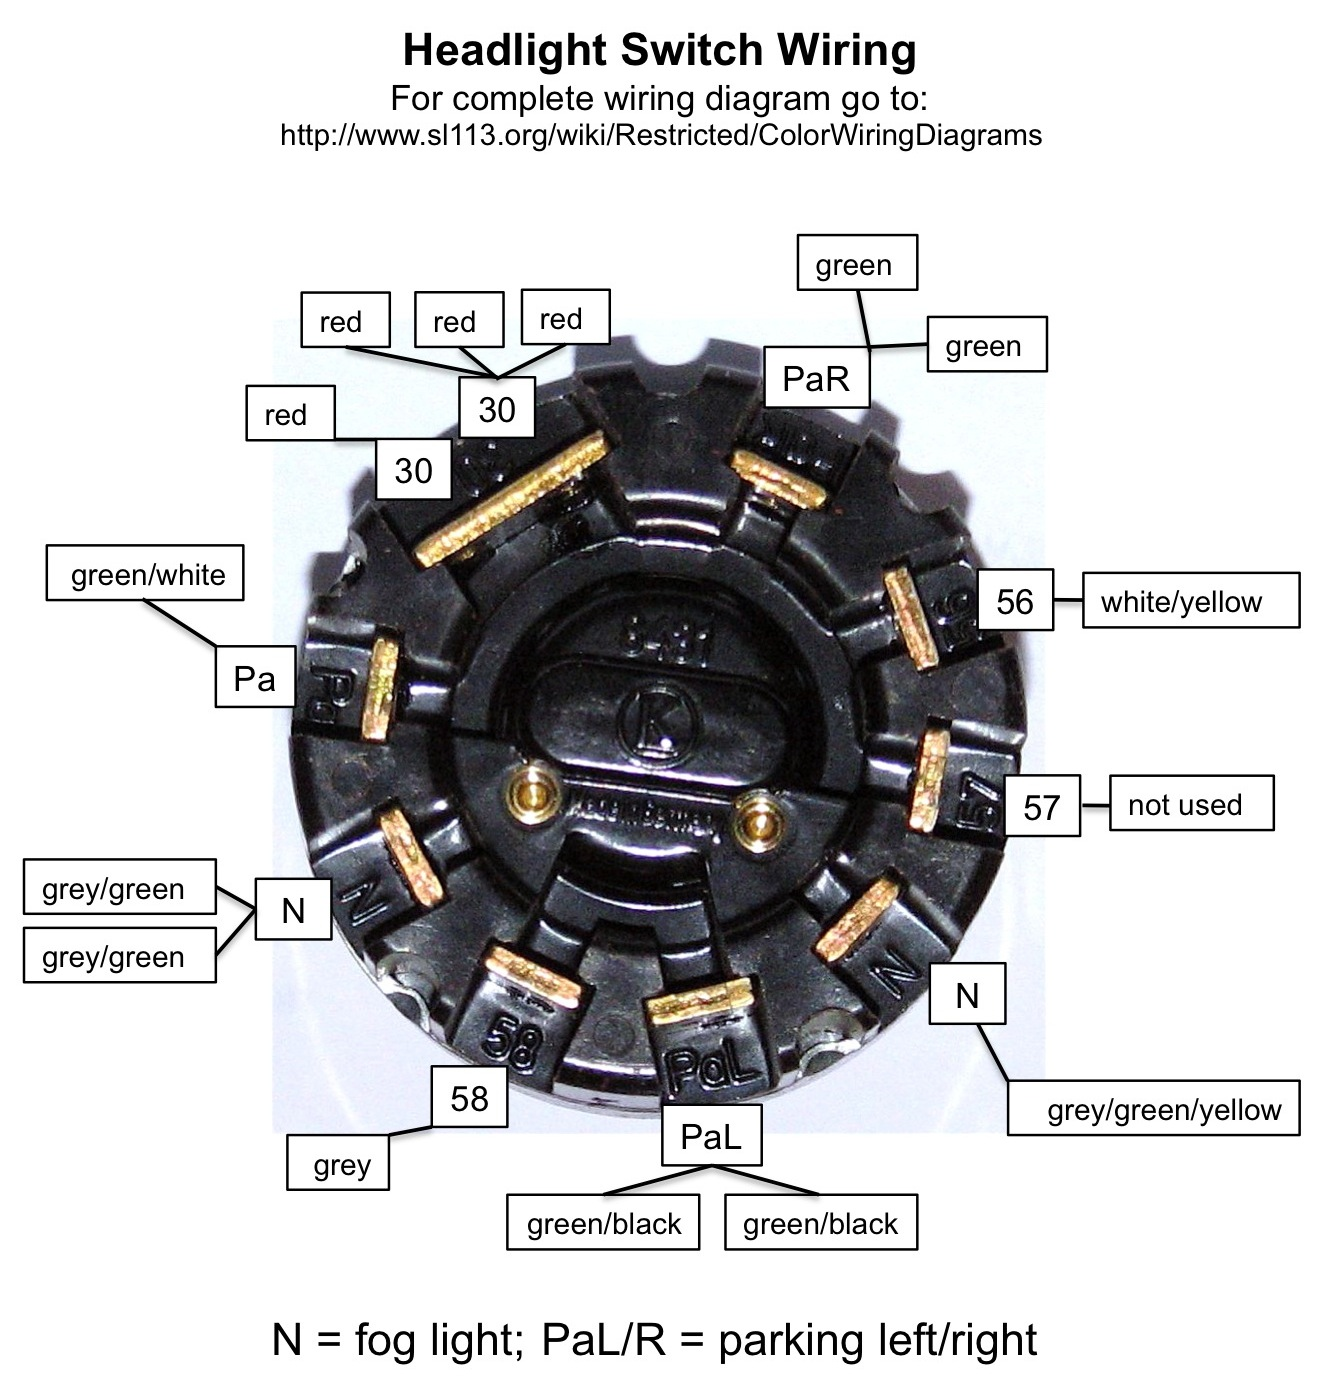 car light switch wiring diagram car image wiring pagoda sl group technical manual electrical lightswitch on car light switch wiring diagram